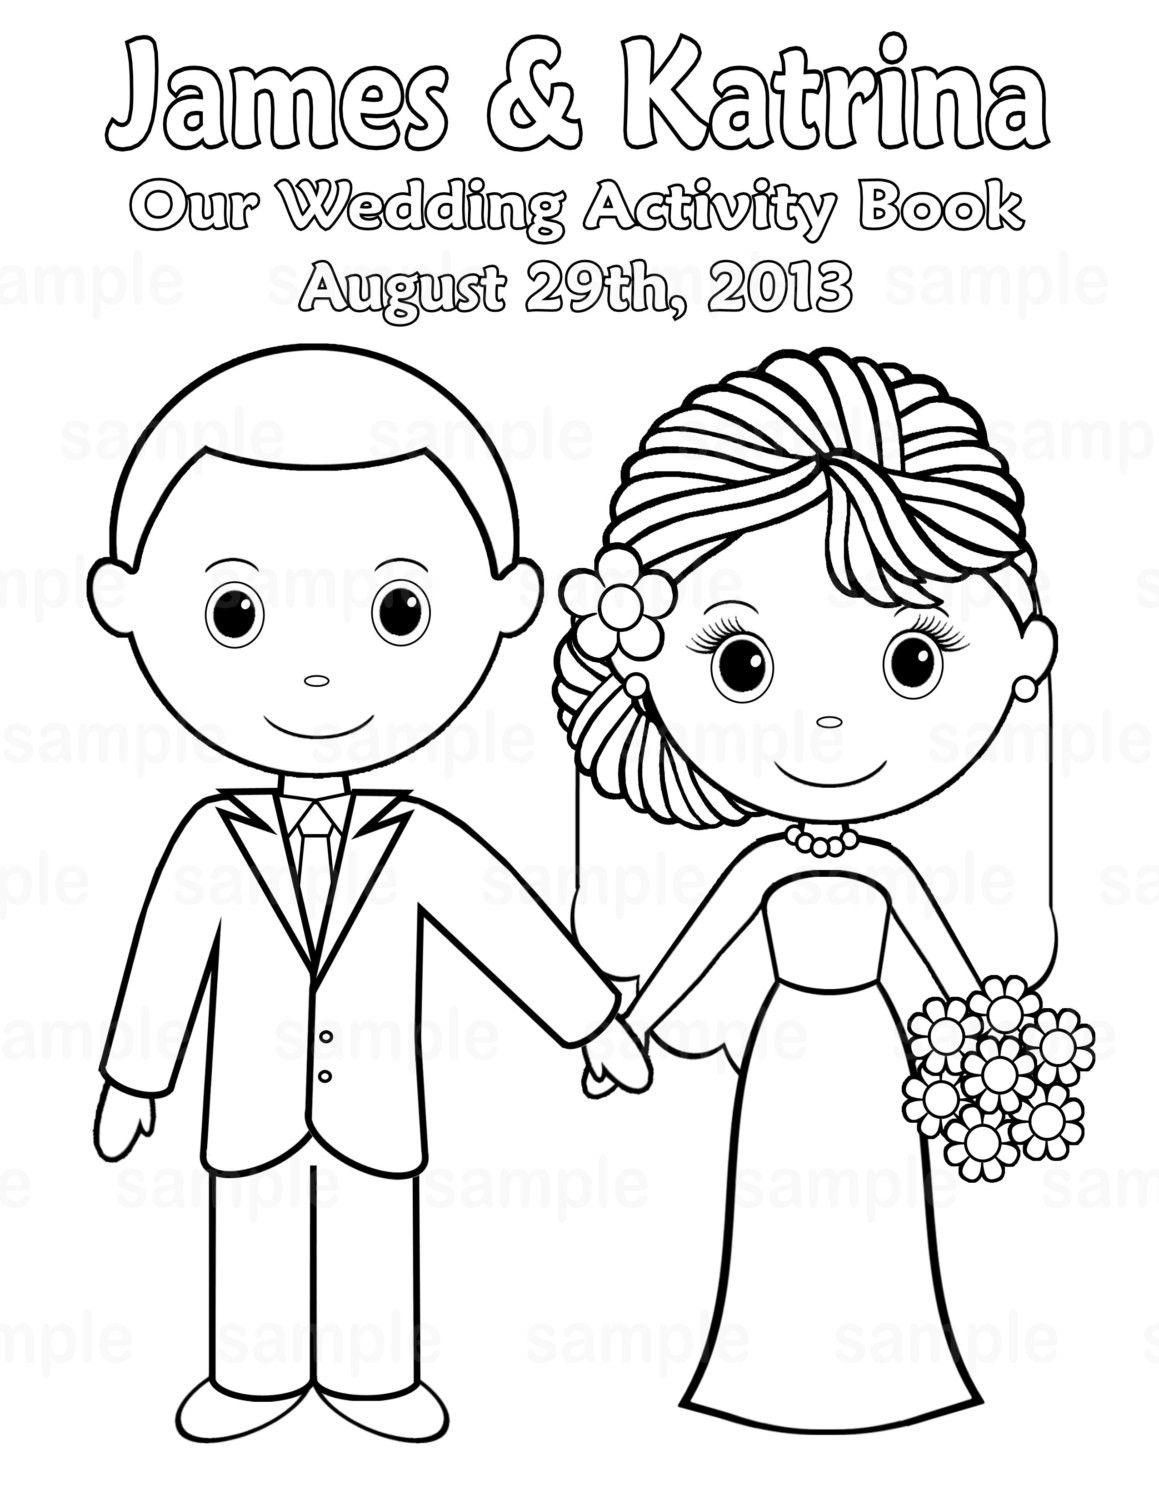 coloring picture color for kids christmas to color for kids christmas kids coloring pages picture for coloring color kids